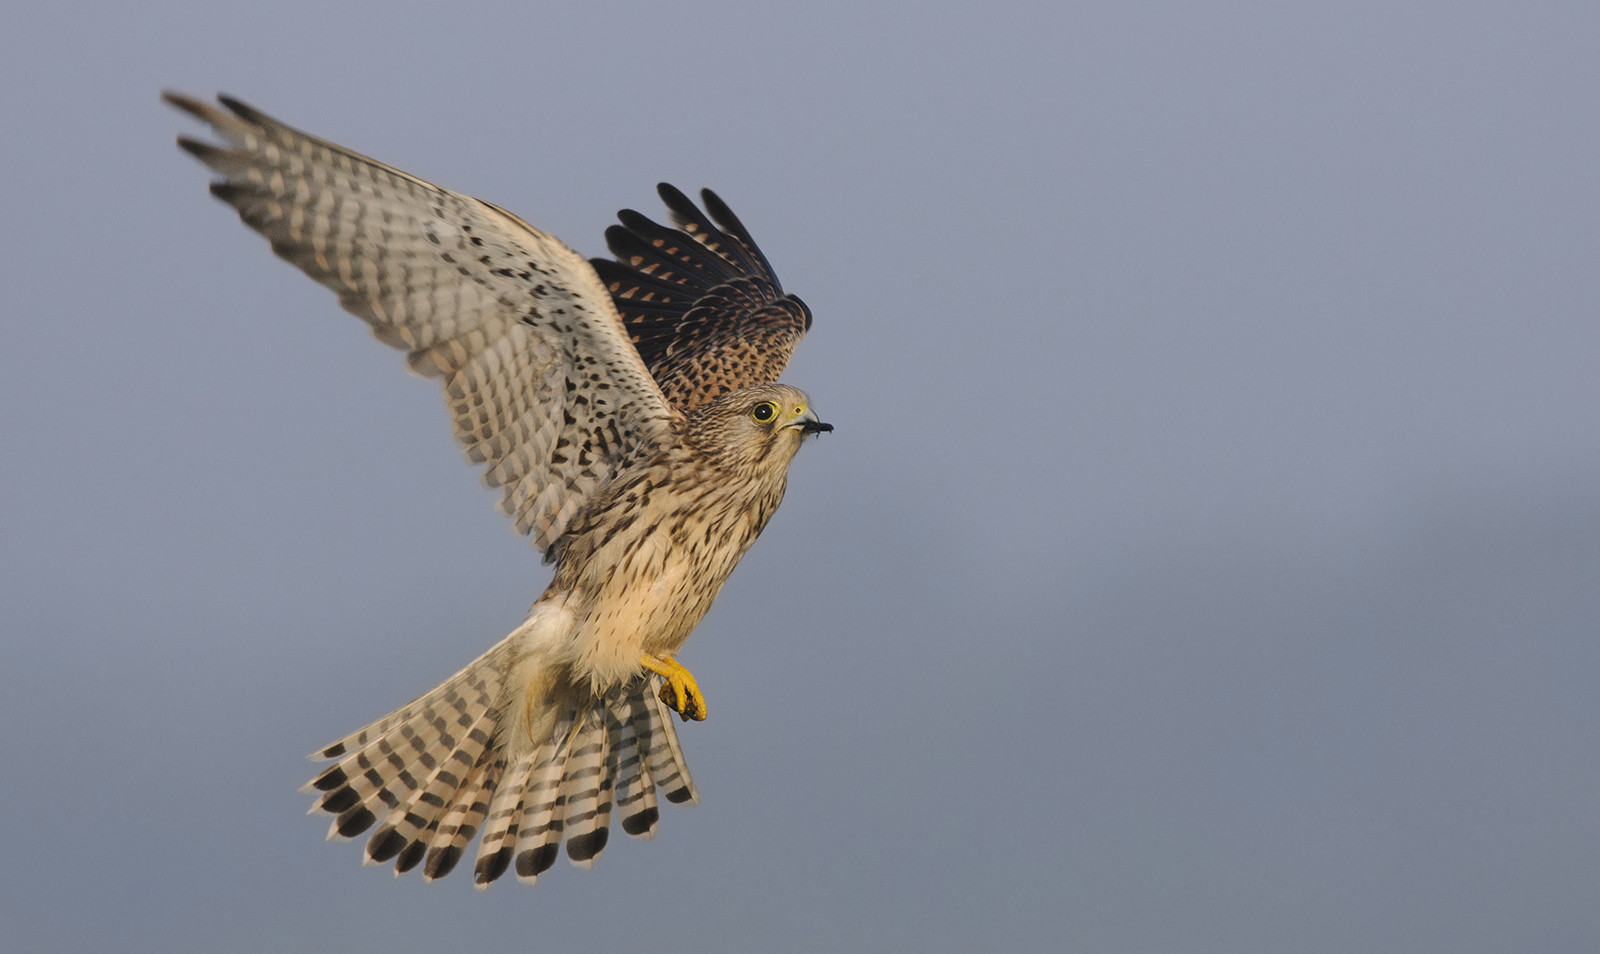 The kestrel (Falco tinnunculus)  is our most common diurnal bird of prey, and is often seen hovering over farmland and at the sides of motorways (5). With its long tail and narrow wings, it is easy to distinguish from most other species